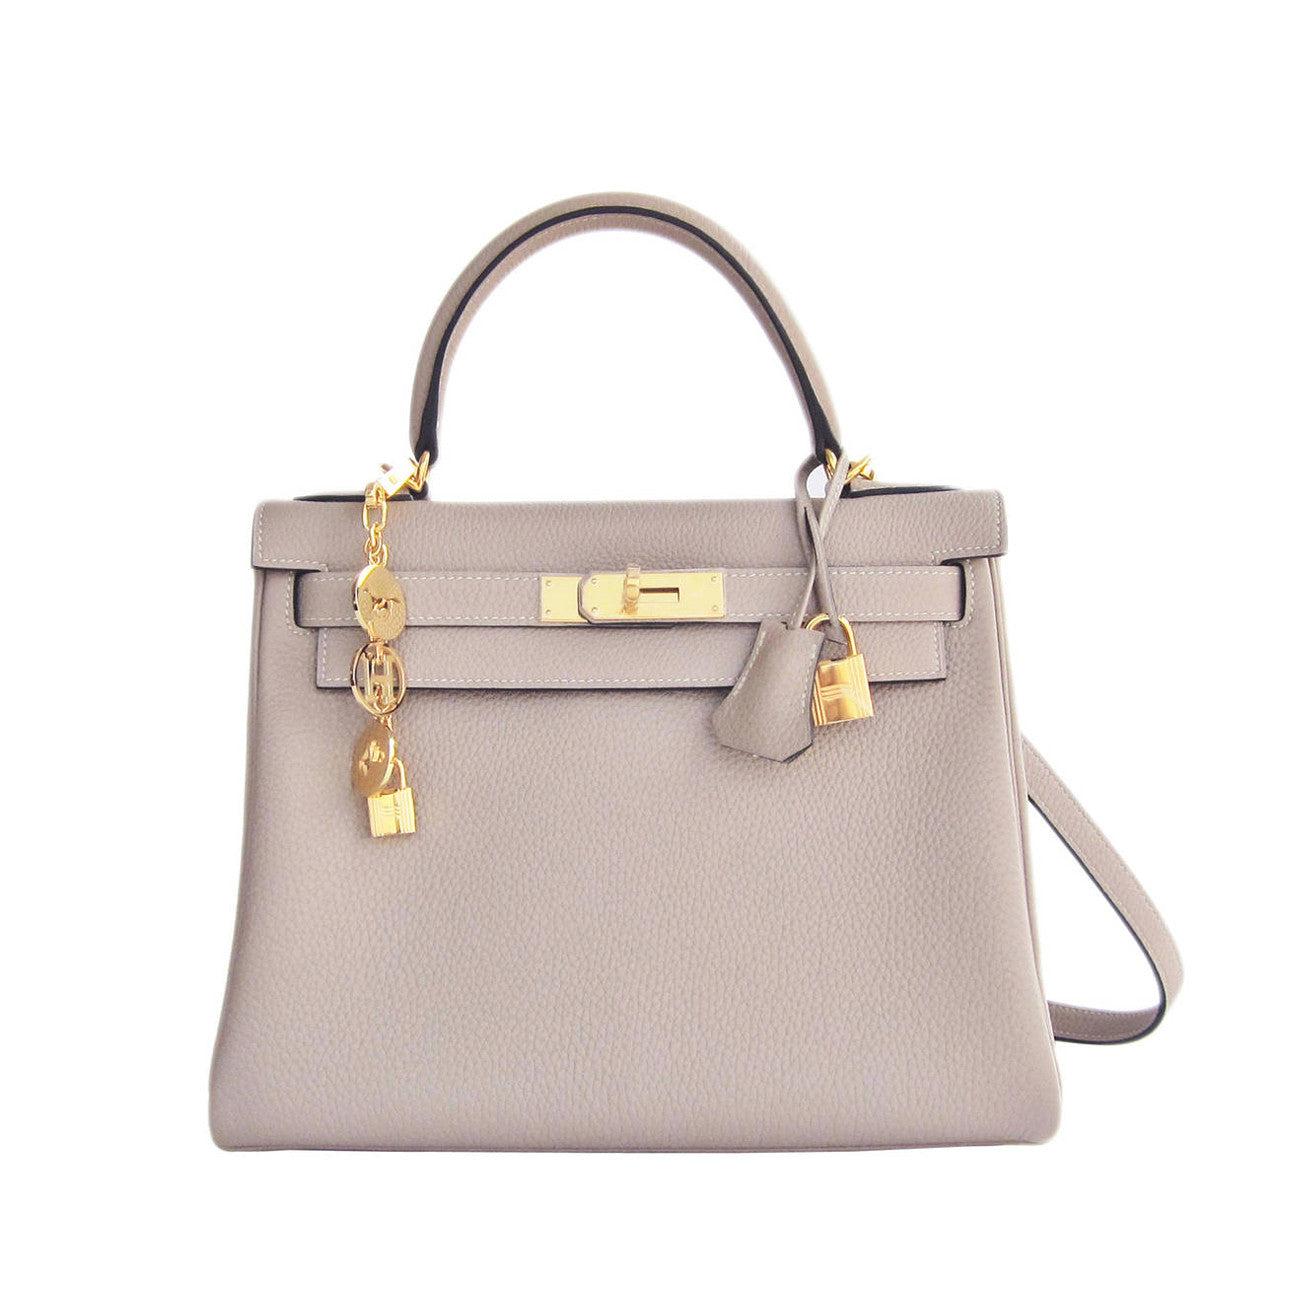 ef708b489760 ... italy hermes gris tourterelle 28cm togo kelly gold ghw shoulder bag  51817 a35f6